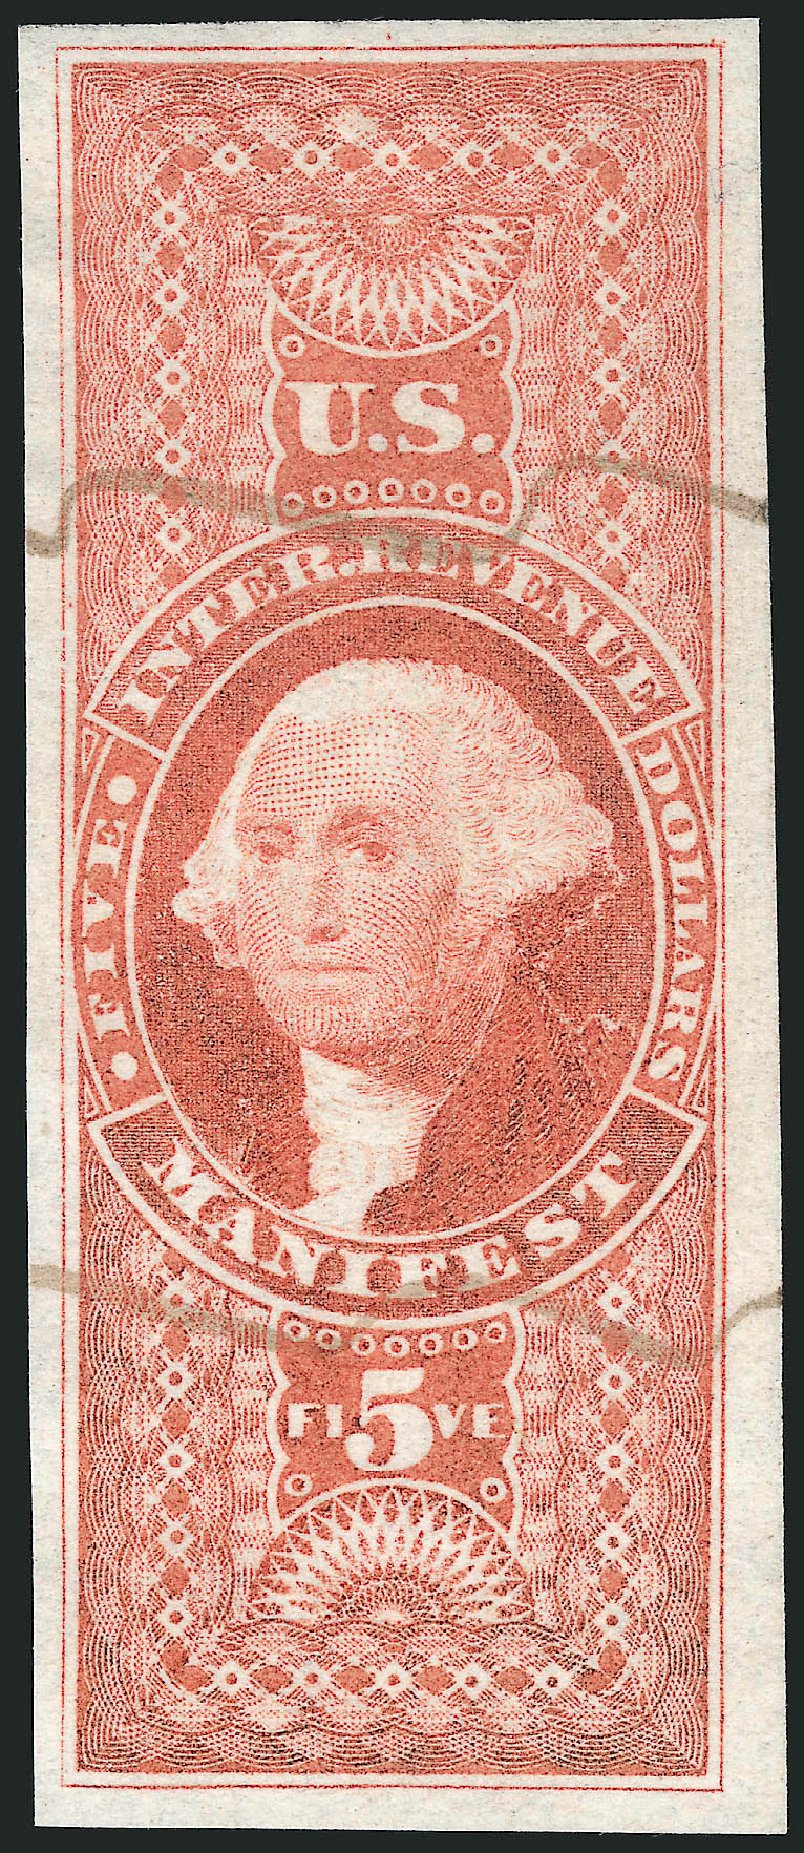 Price of US Stamp Scott Catalog # R90 - 1862 US$5.00 Revenue Manifest. Robert Siegel Auction Galleries, Mar 2014, Sale 1066, Lot 32